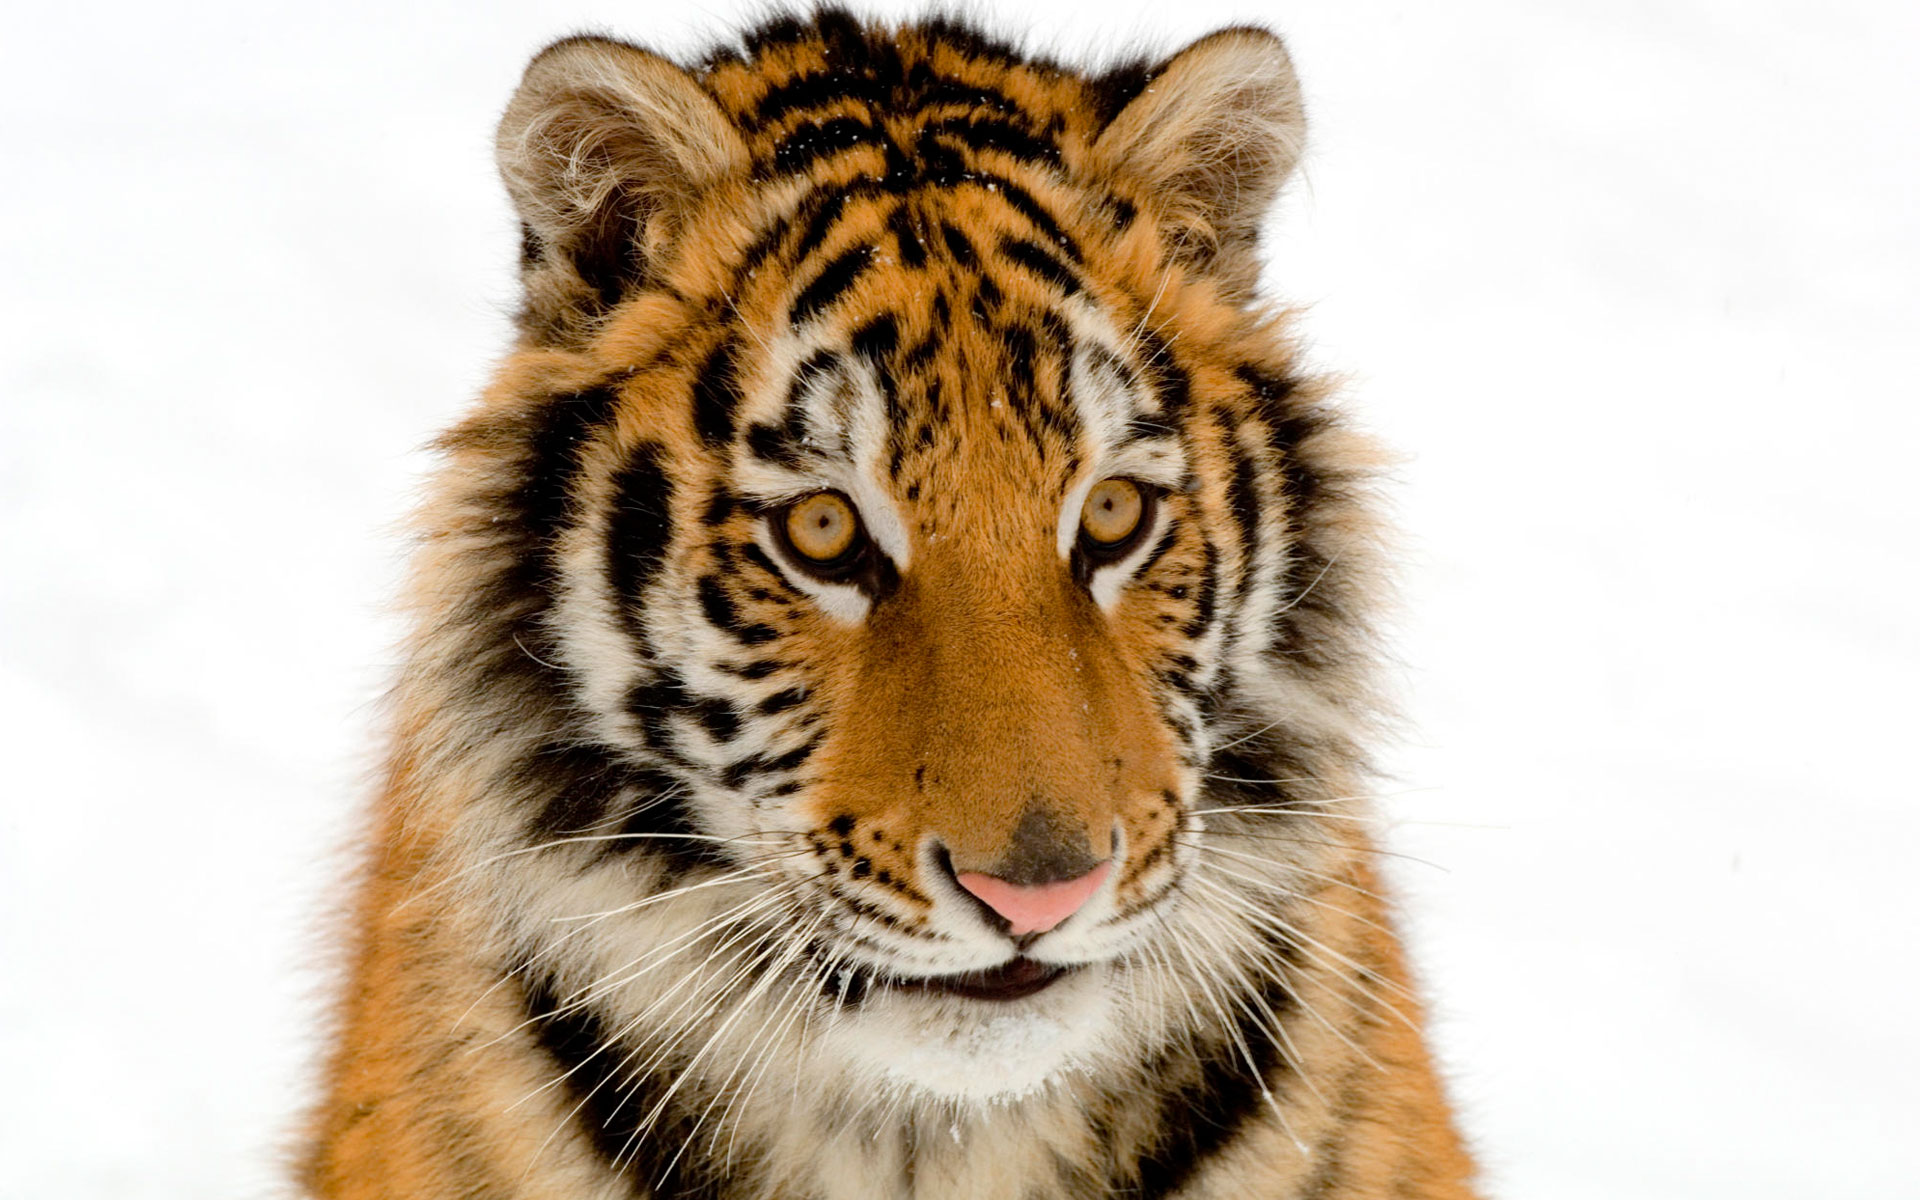 HD Wallpapers Portrait of a Tiger